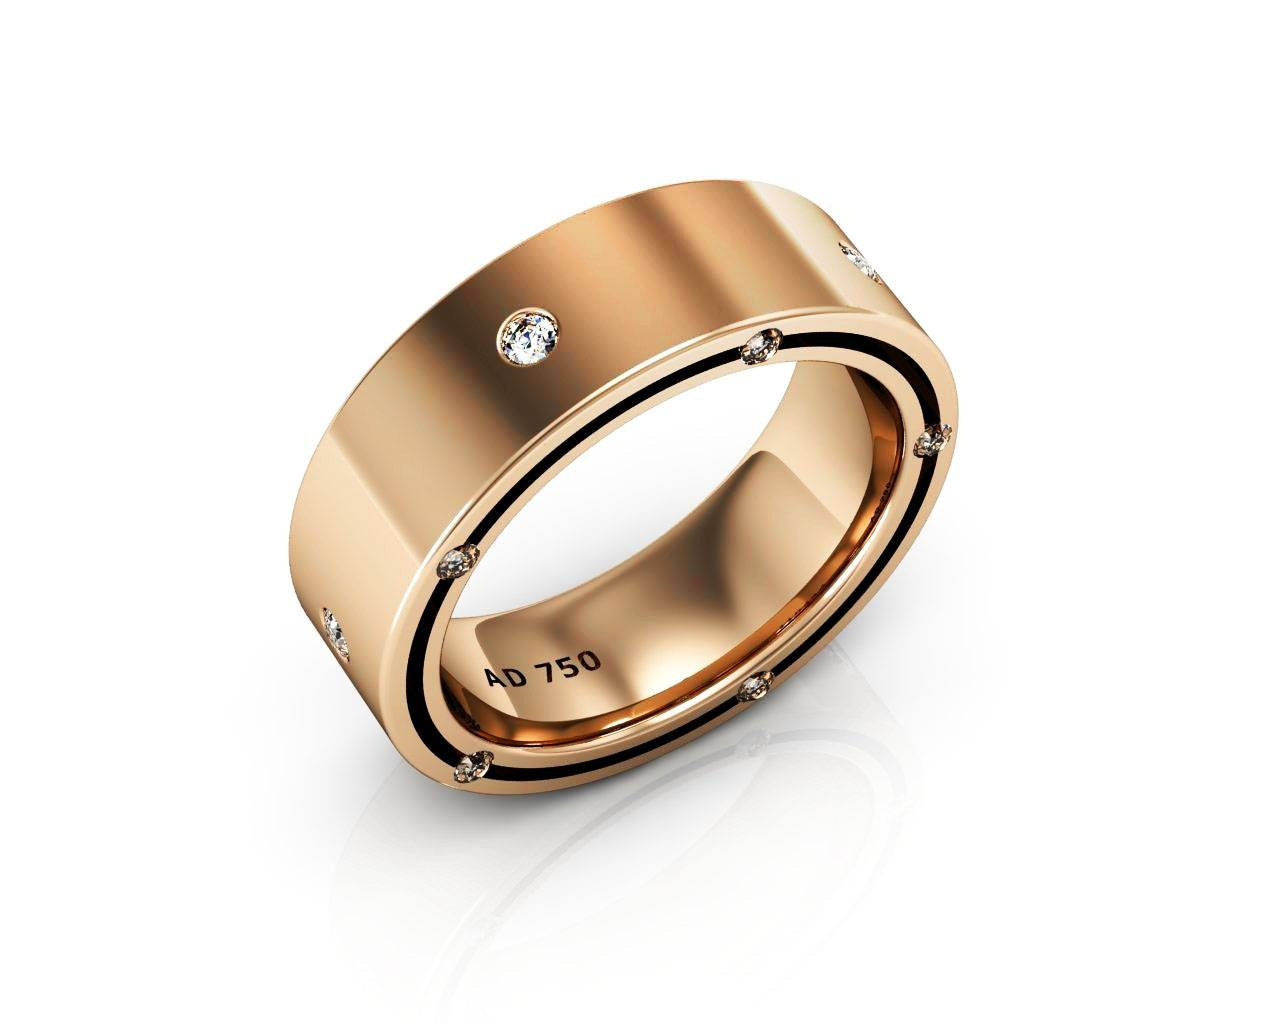 Stone Diamond Rose Gold Men's Wedding Bands Within Rose Gold Men's Wedding Bands With Diamonds (Gallery 218 of 339)